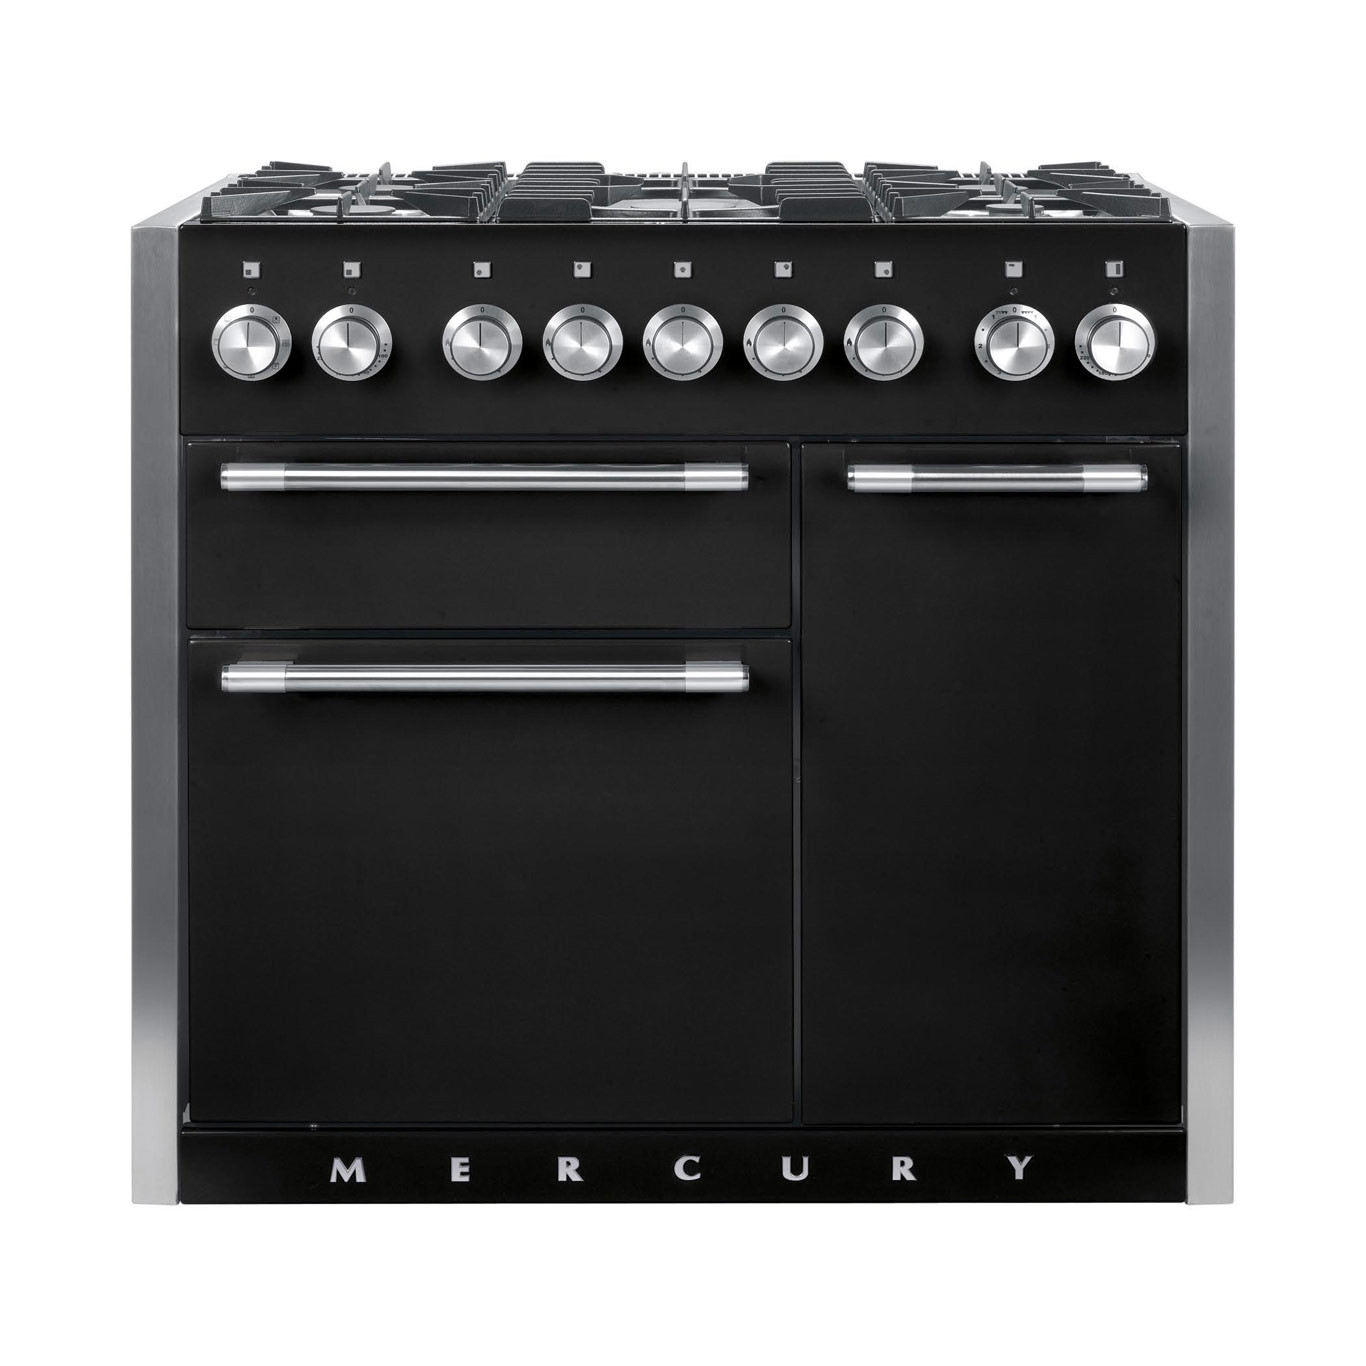 Mercury MCY1000DF Dual Fuel Ash Black Range Cooker